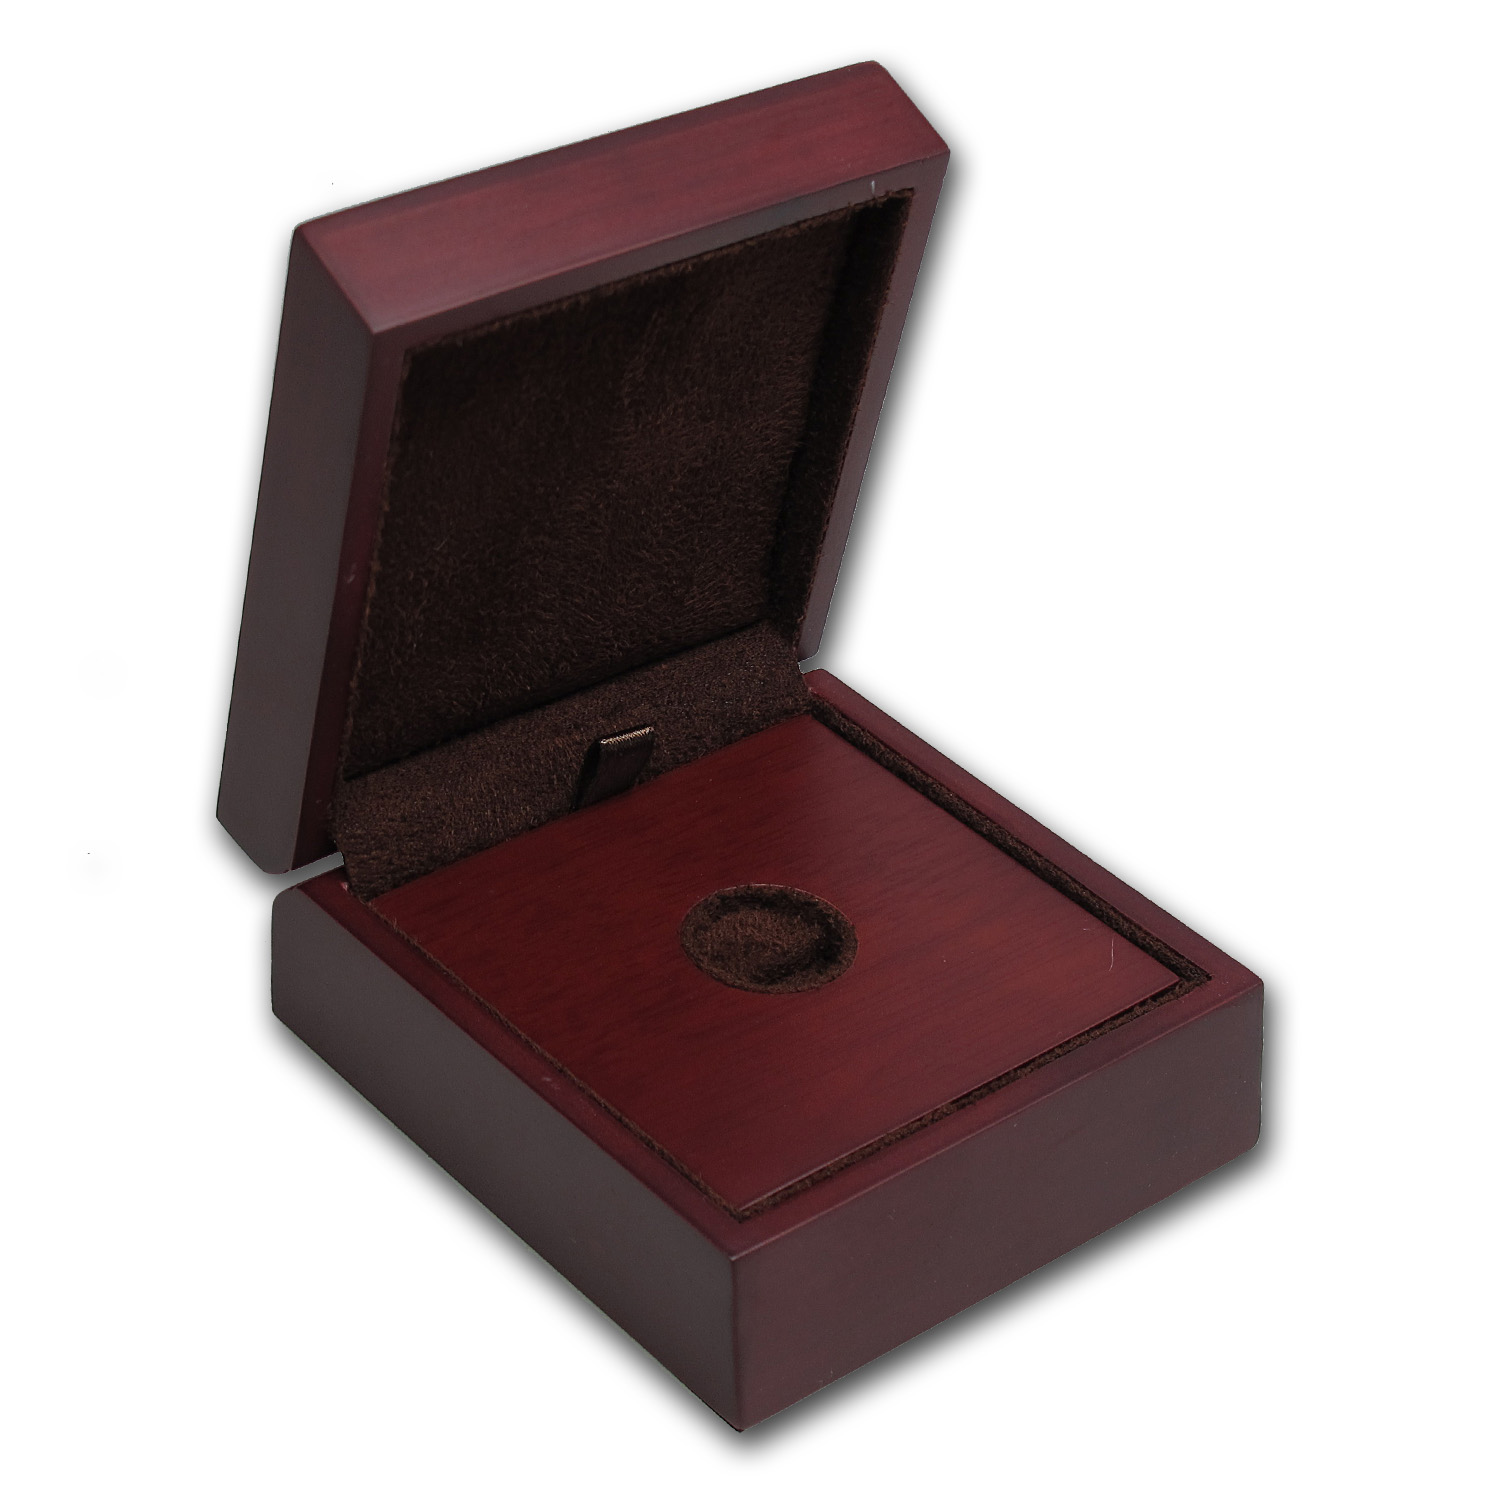 APMEX Wood Presentation Box - 1/10 oz Perth Gold Series 1 & 2